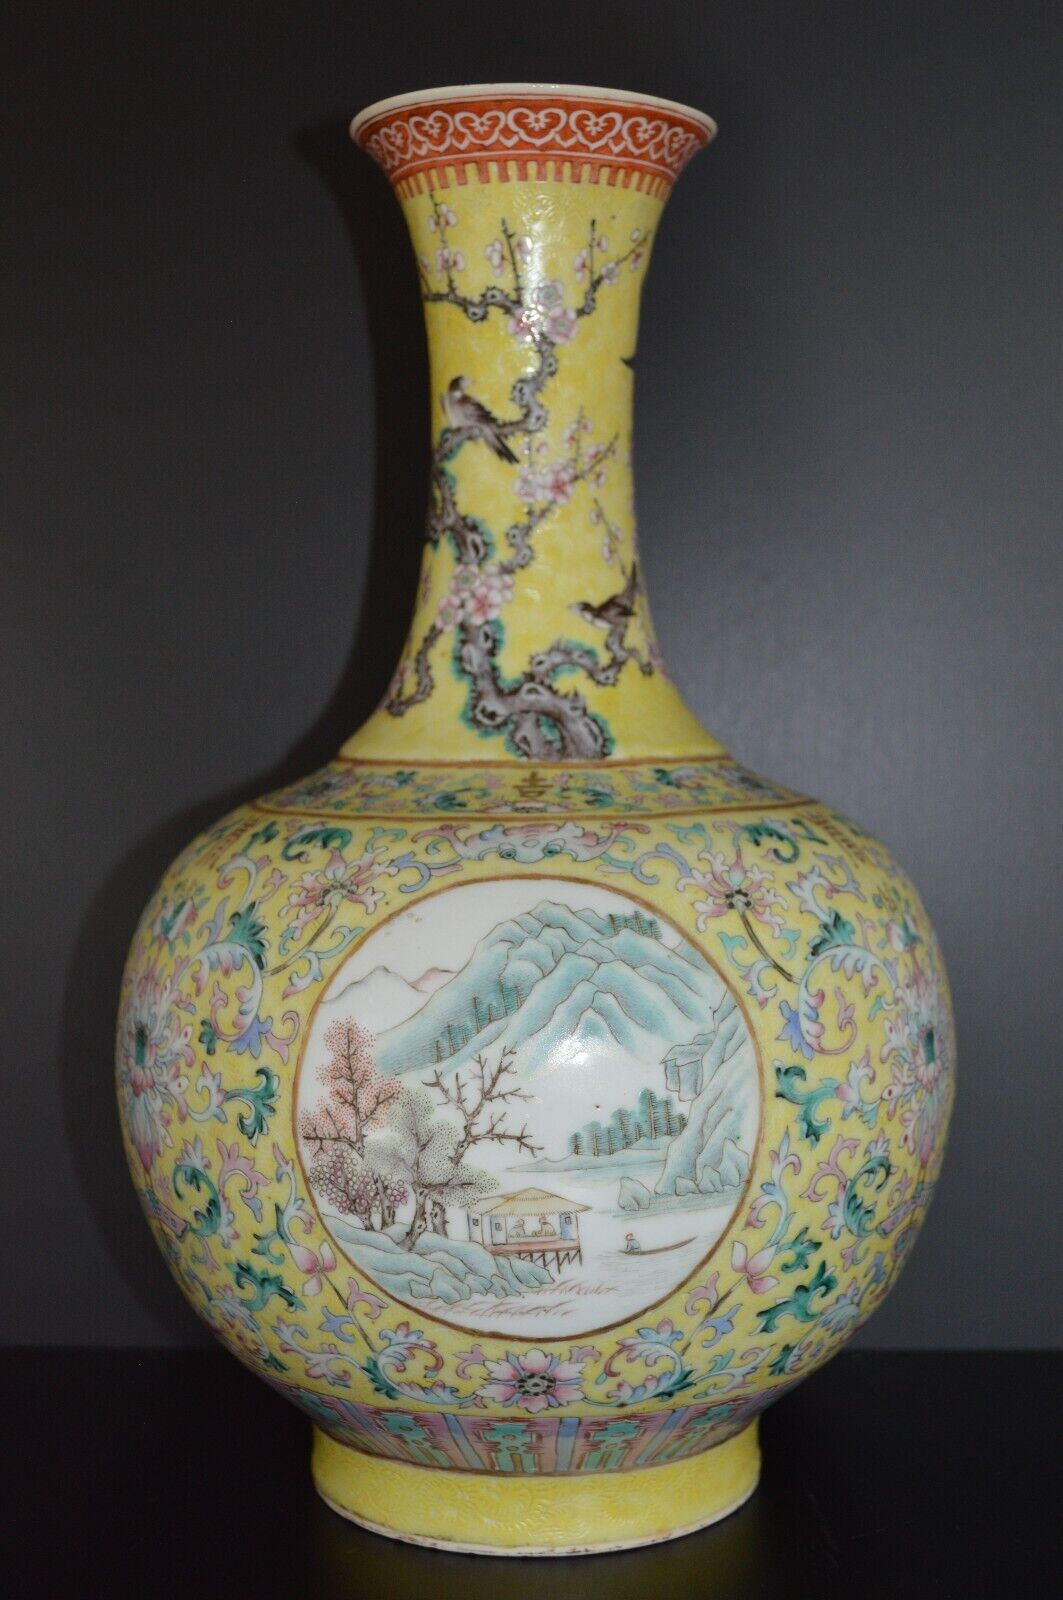 Antique Chinese Yellow Ground Famille Rose Vase, 18th Century Chinese Antique - $2,200.00